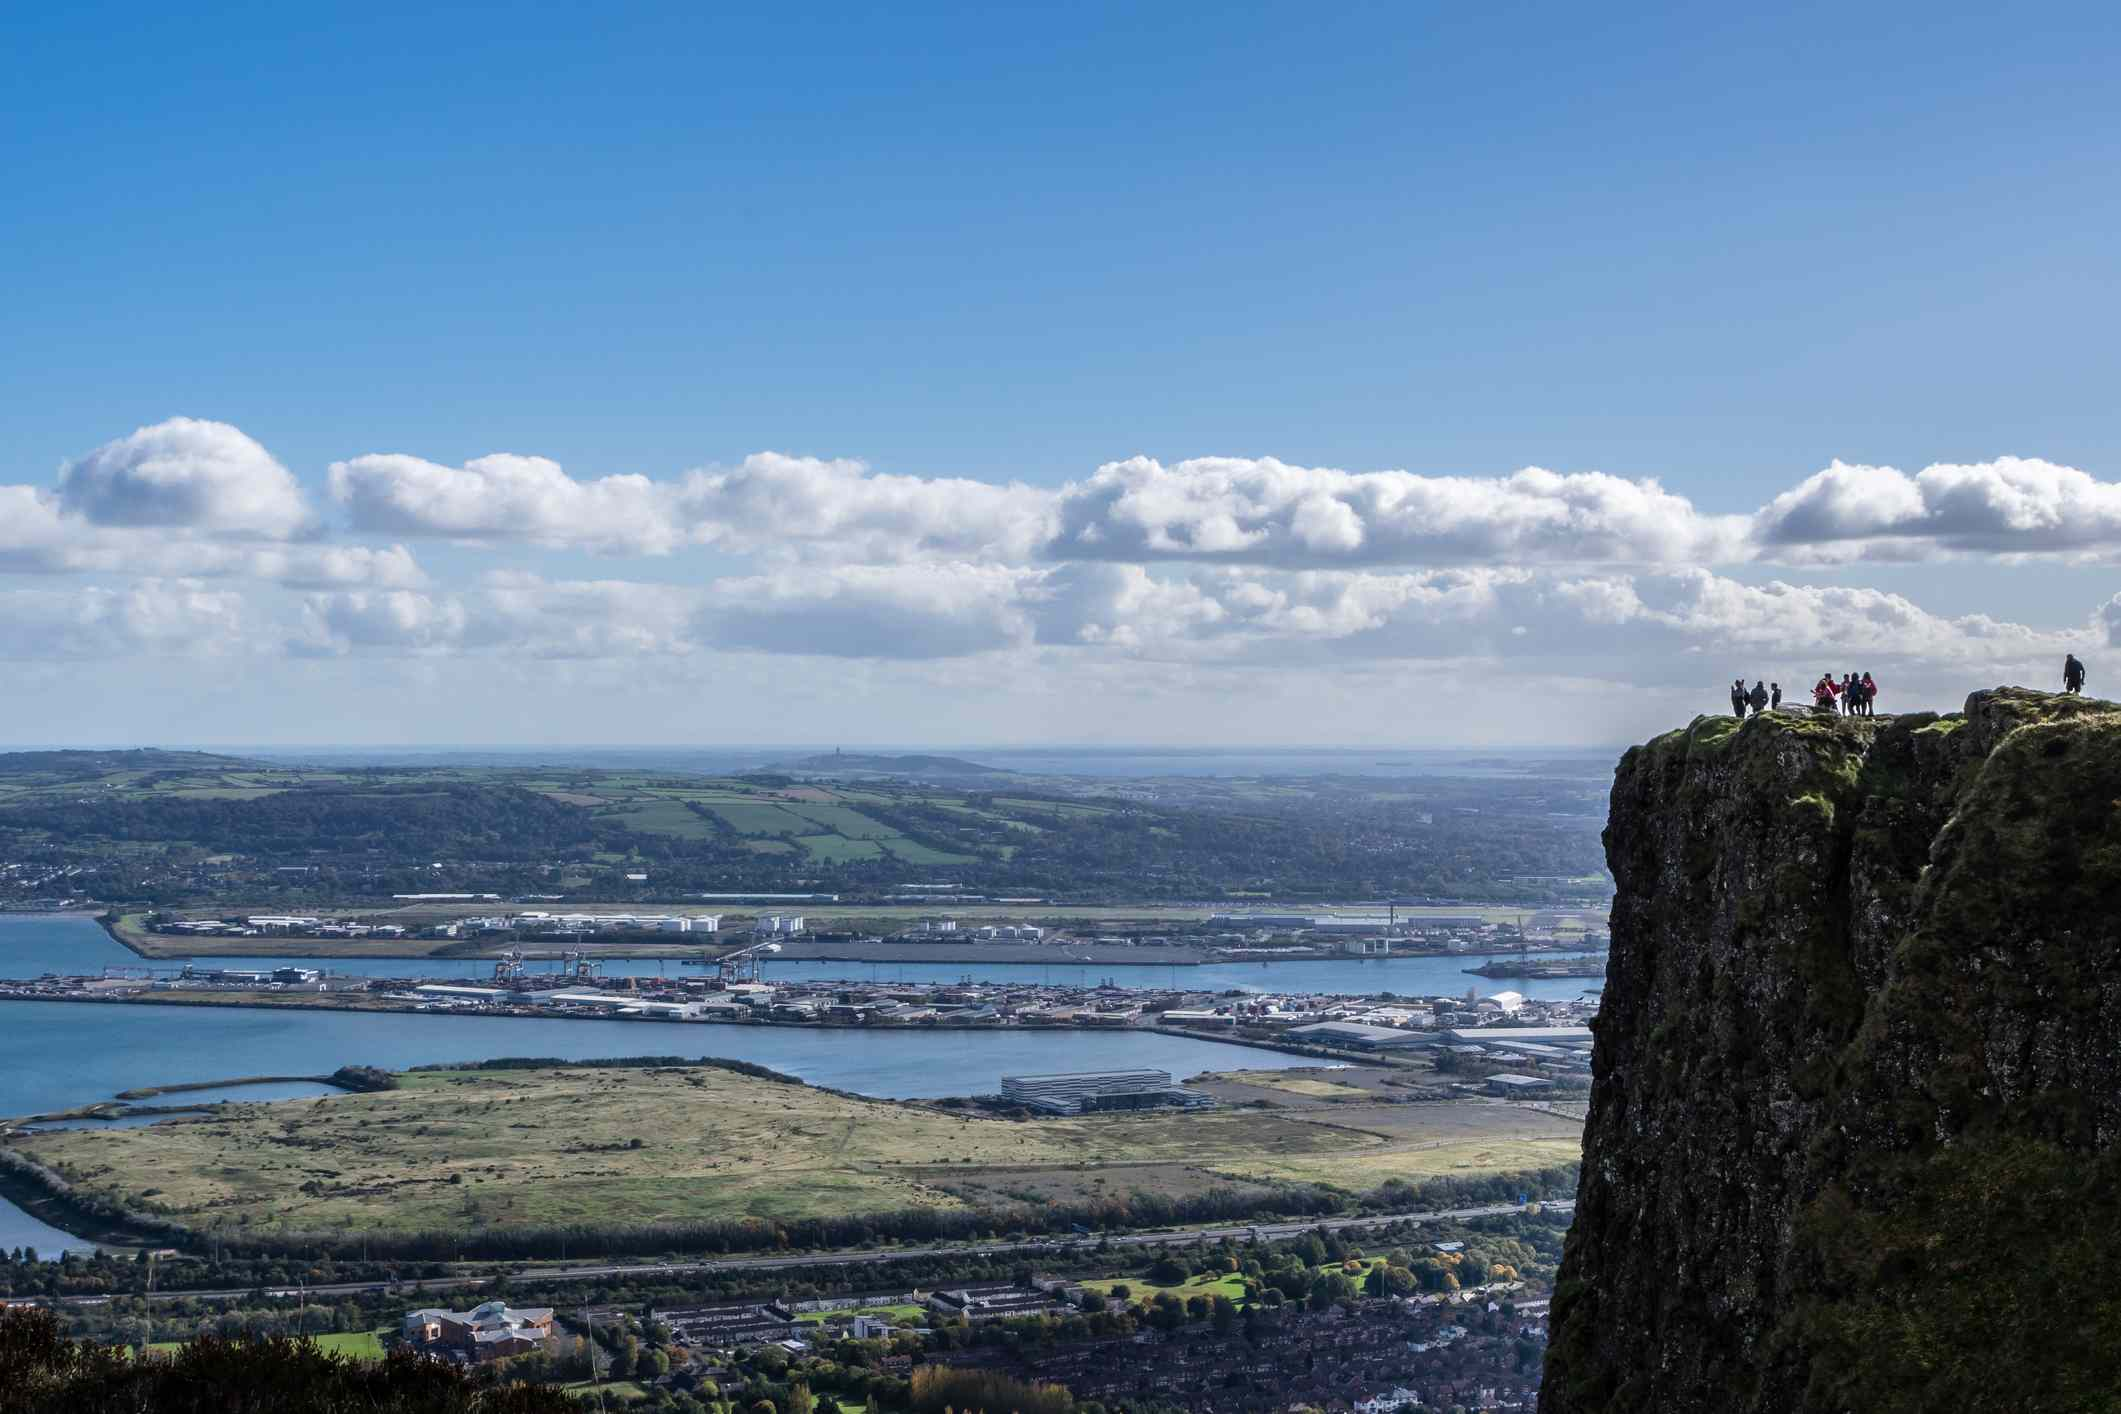 The view from the top of Cave Hill in Belfast.